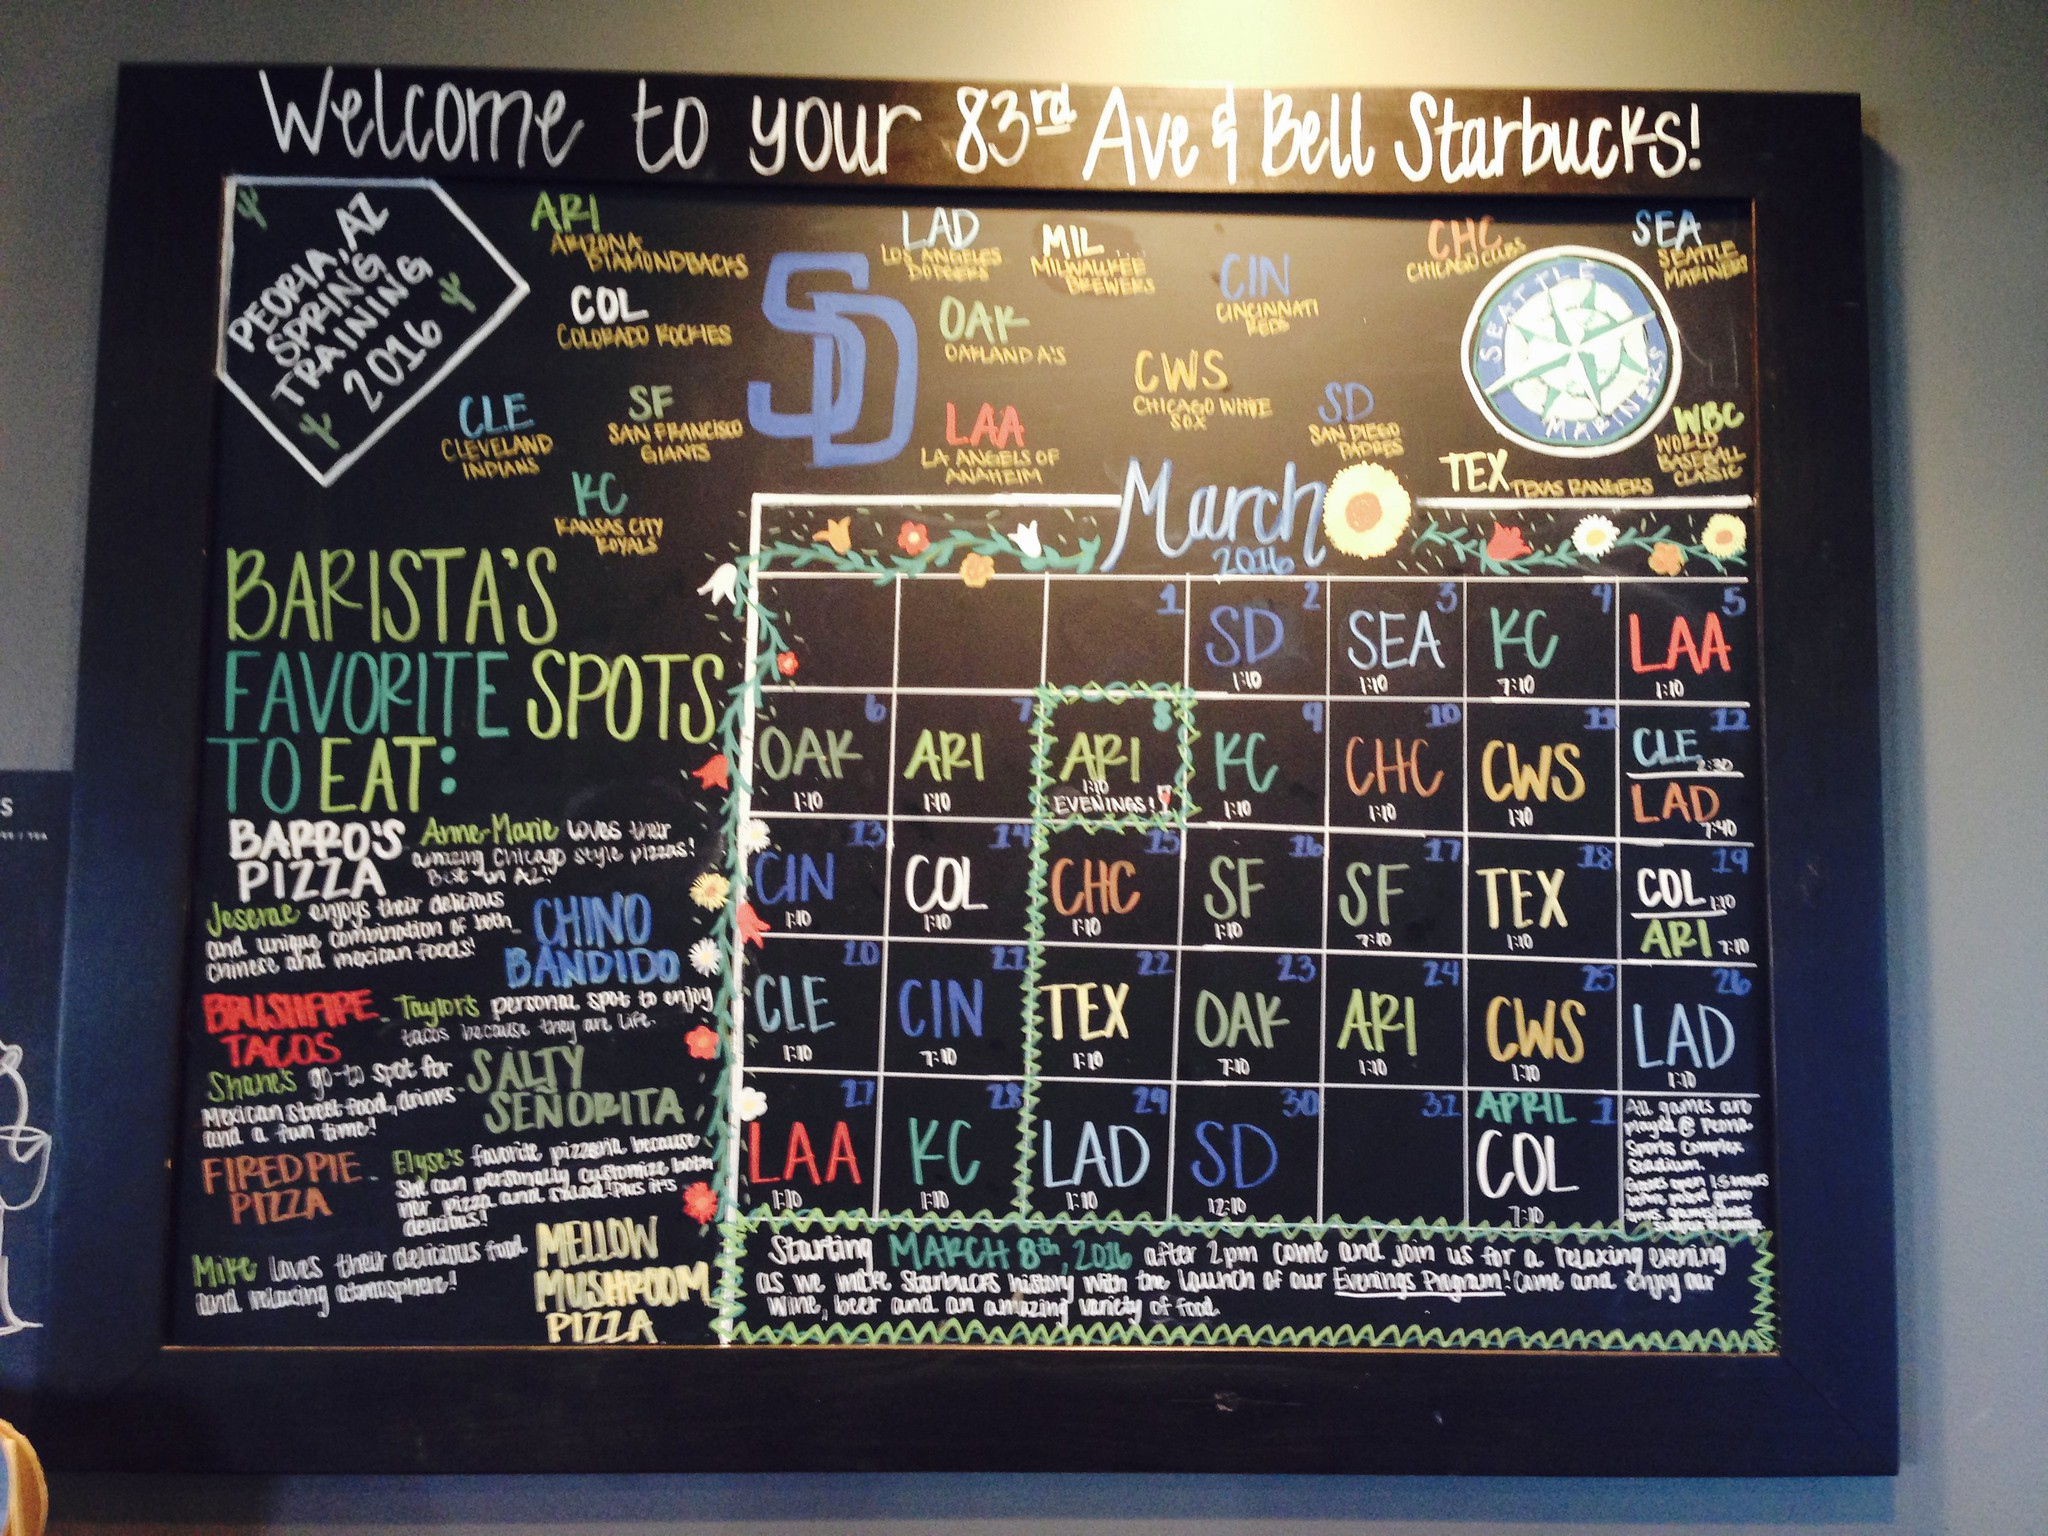 Sports is big at this Starbucks